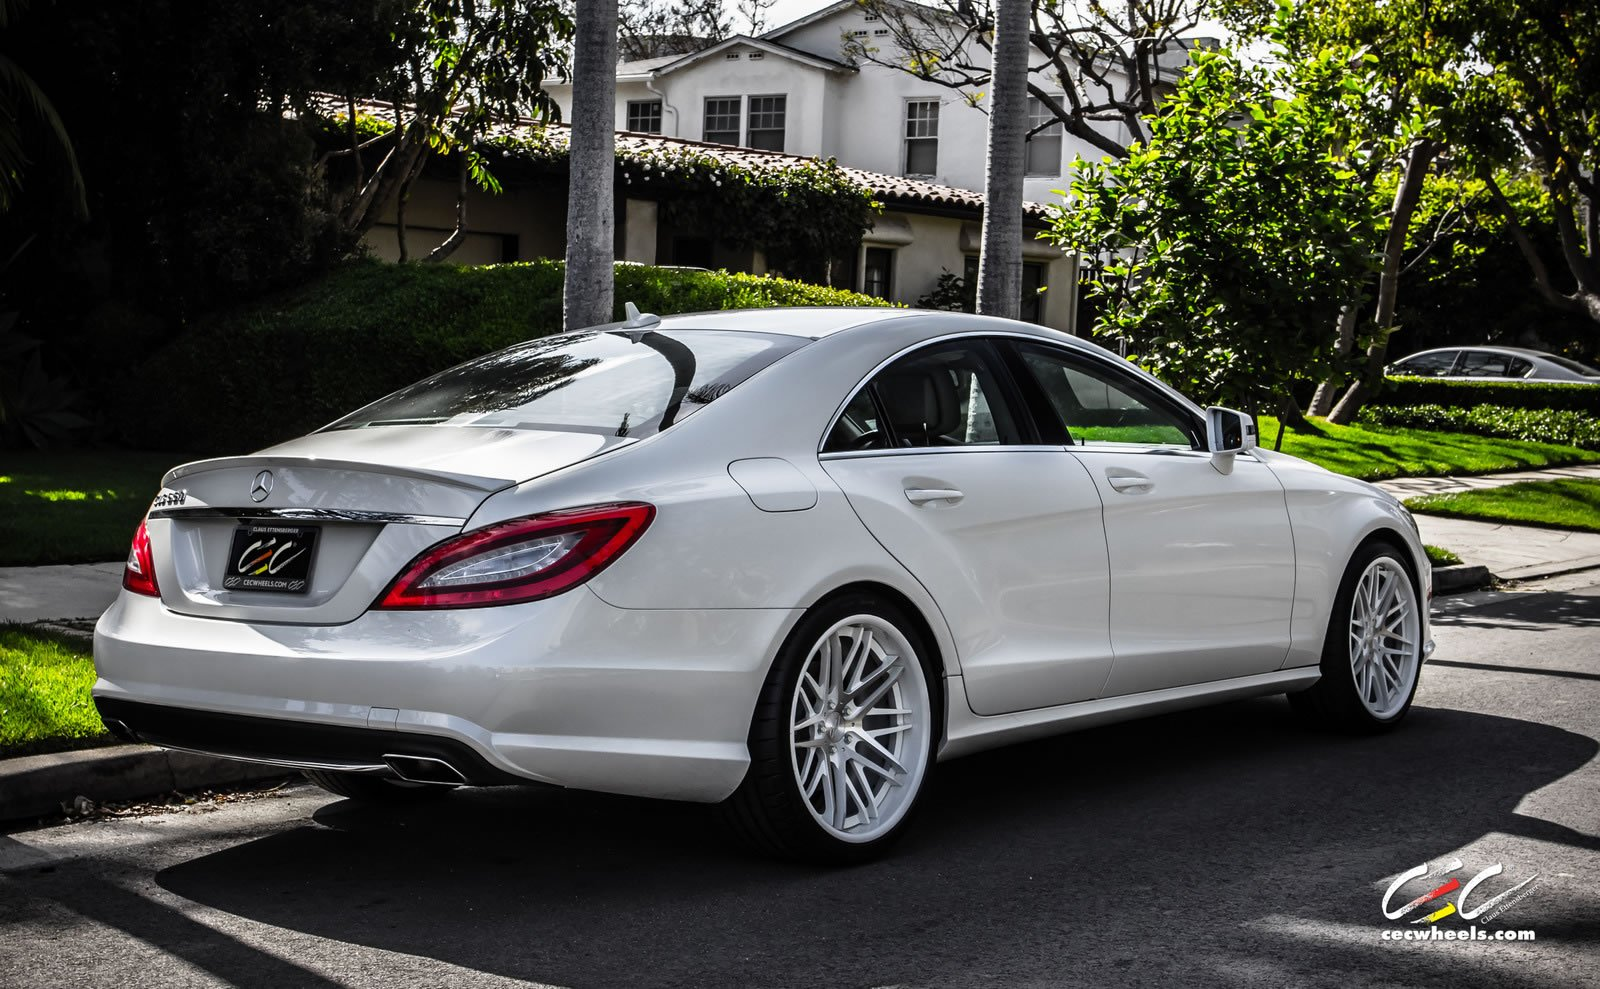 2015 cec wheels tuning cars mercedes benz carlsson cls 550 for 2008 mercedes benz cls 550 reviews